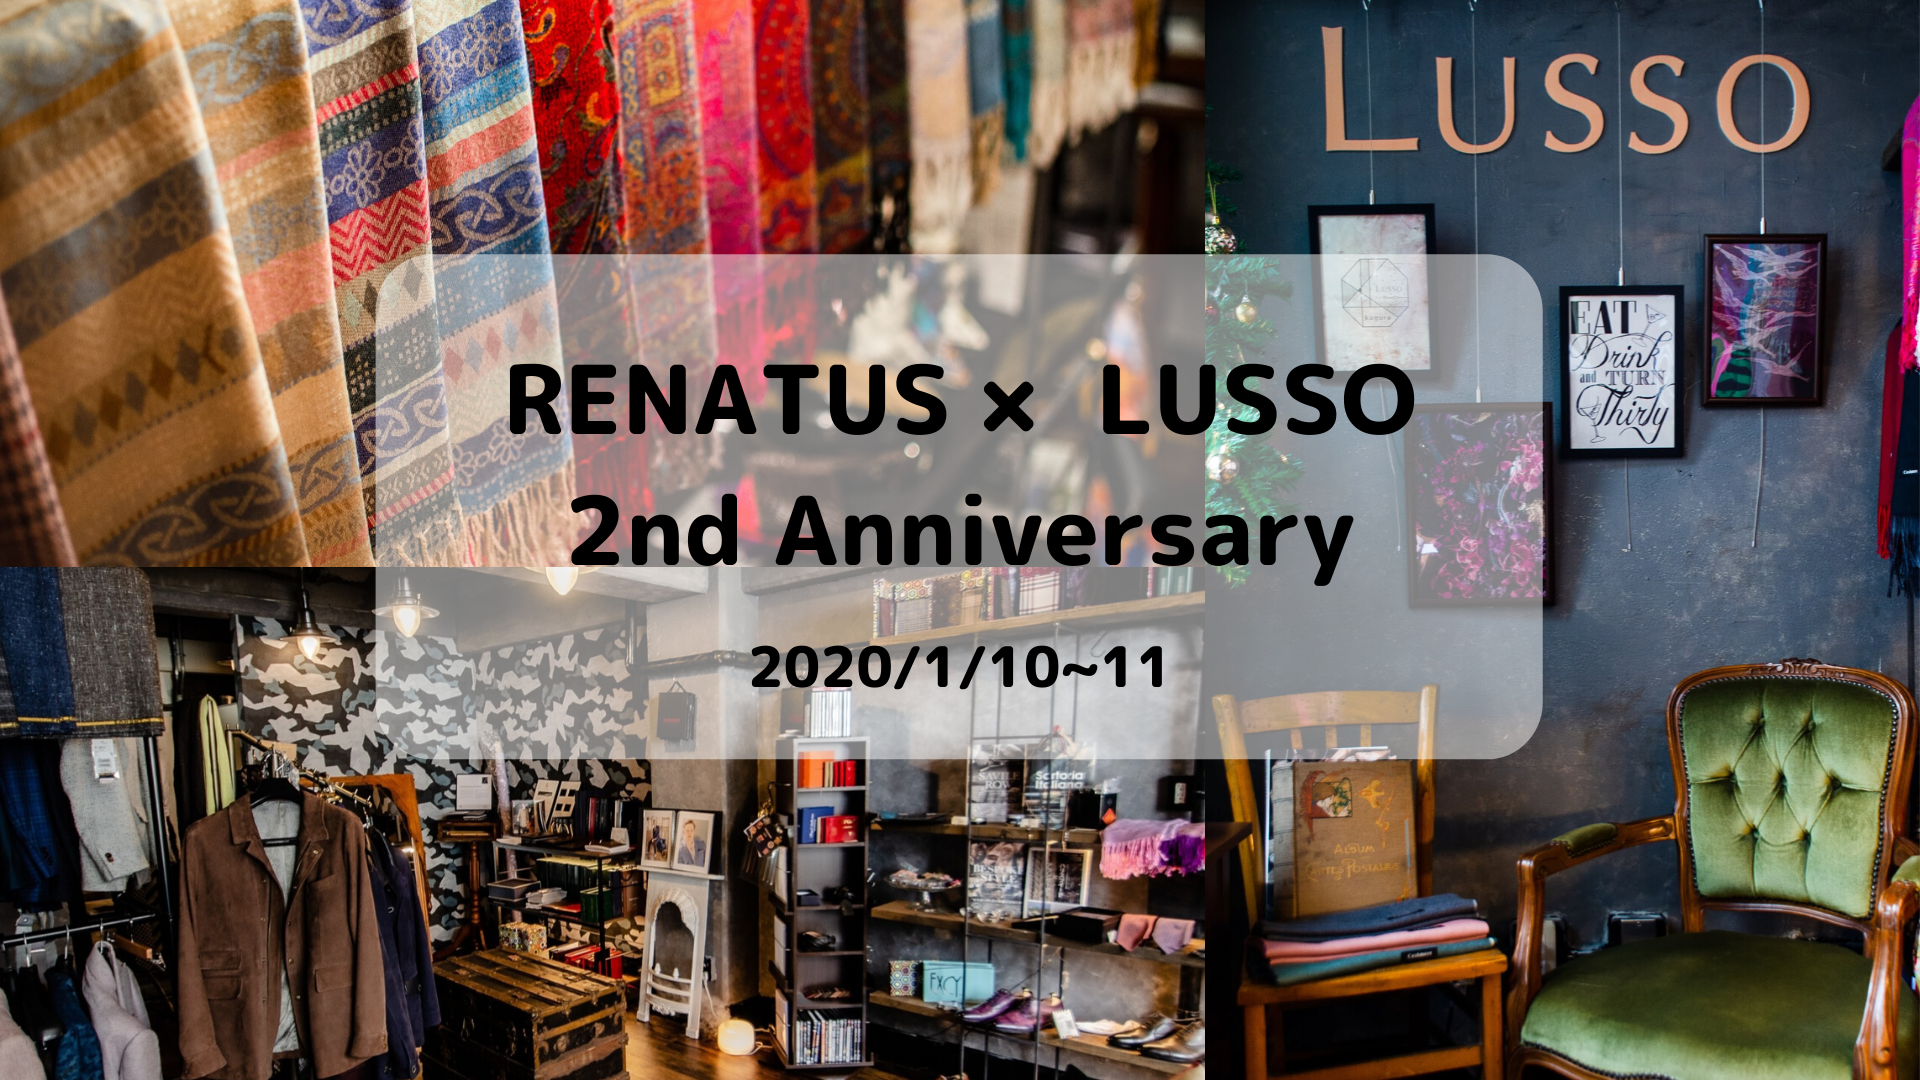 2020/1/10-11 RENTUS×LUSSO 2nd anniversary party